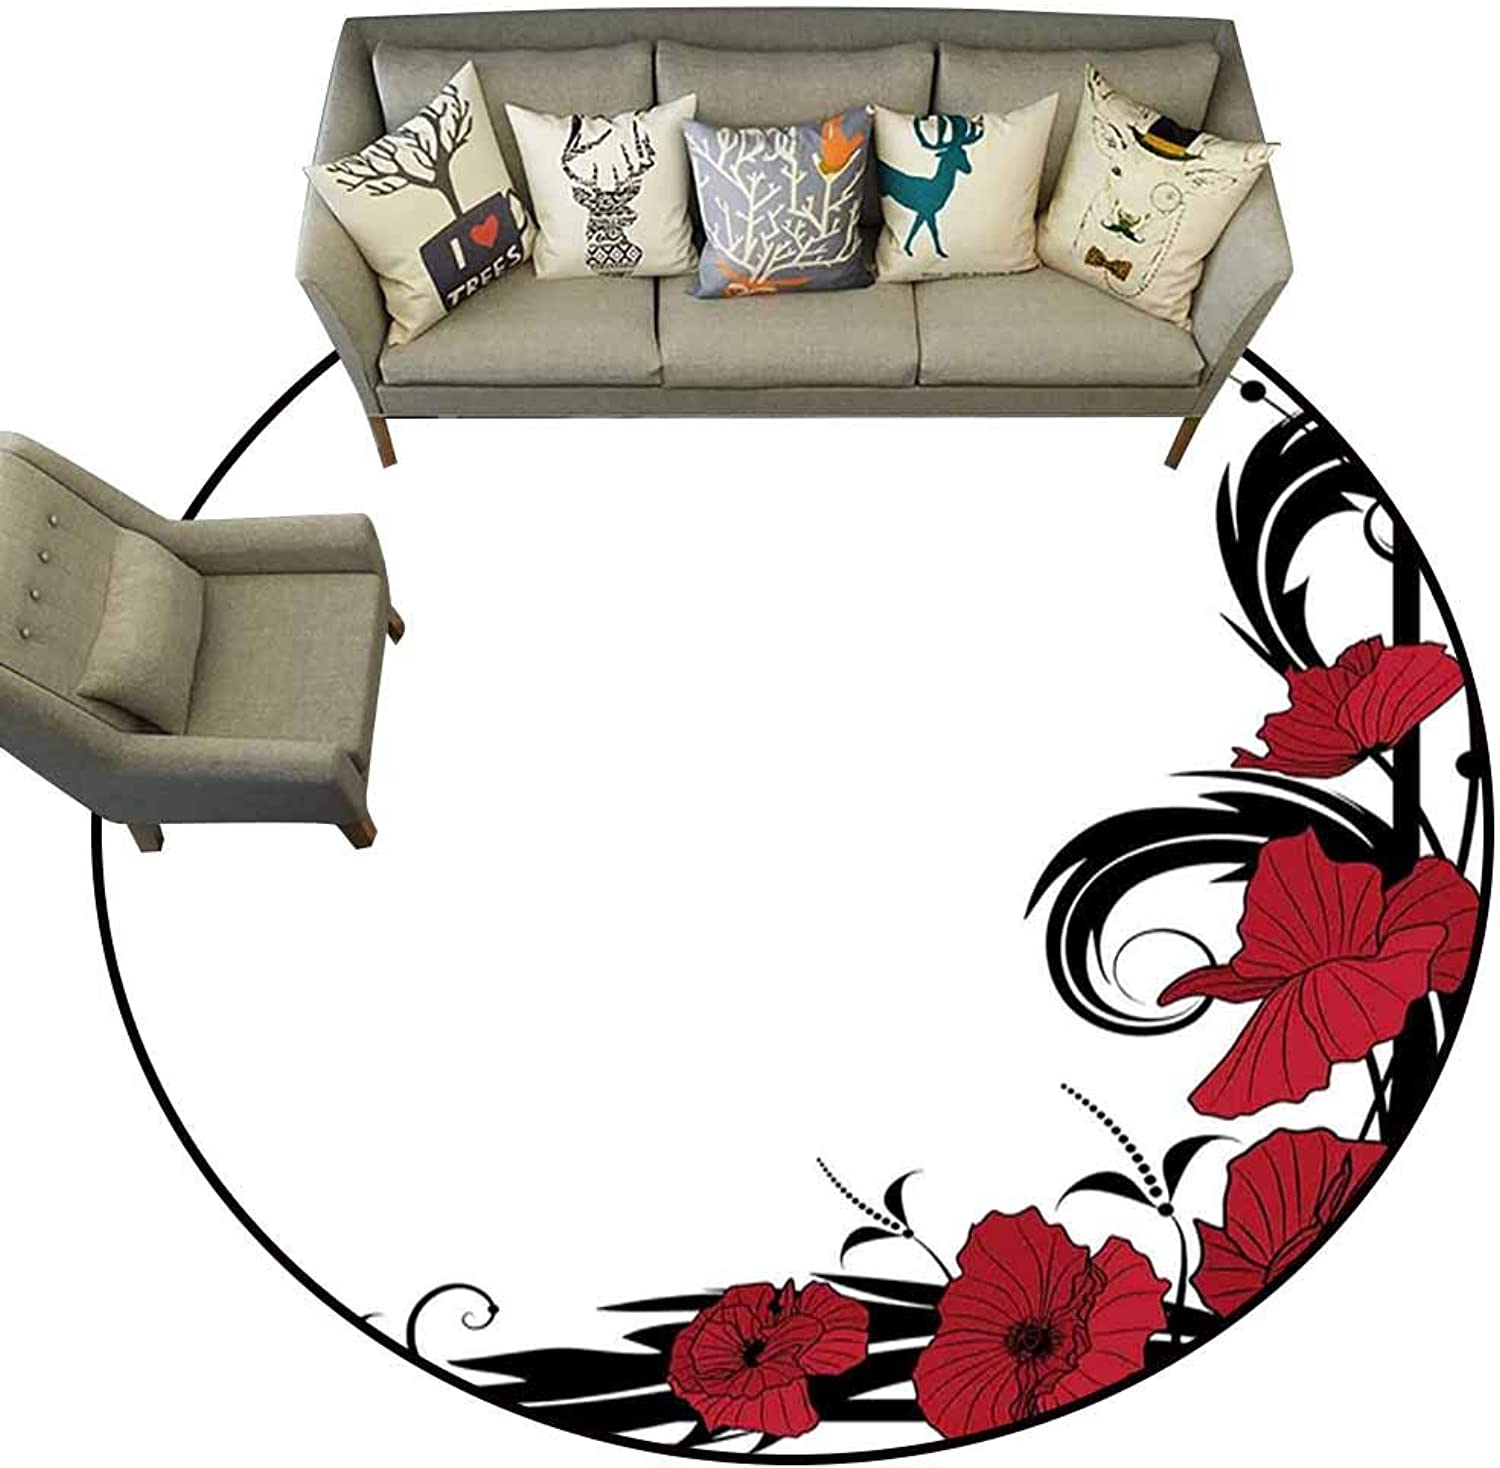 Anti Slip Round Doormat Indoor,Art Nouveau,Poppy Bouquet Branches Romantic Pastoral Idyllic Meadow Blossom Vintage,Black Ruby White,Floor Rug shoes Scraper Door Mat Rug3 feet